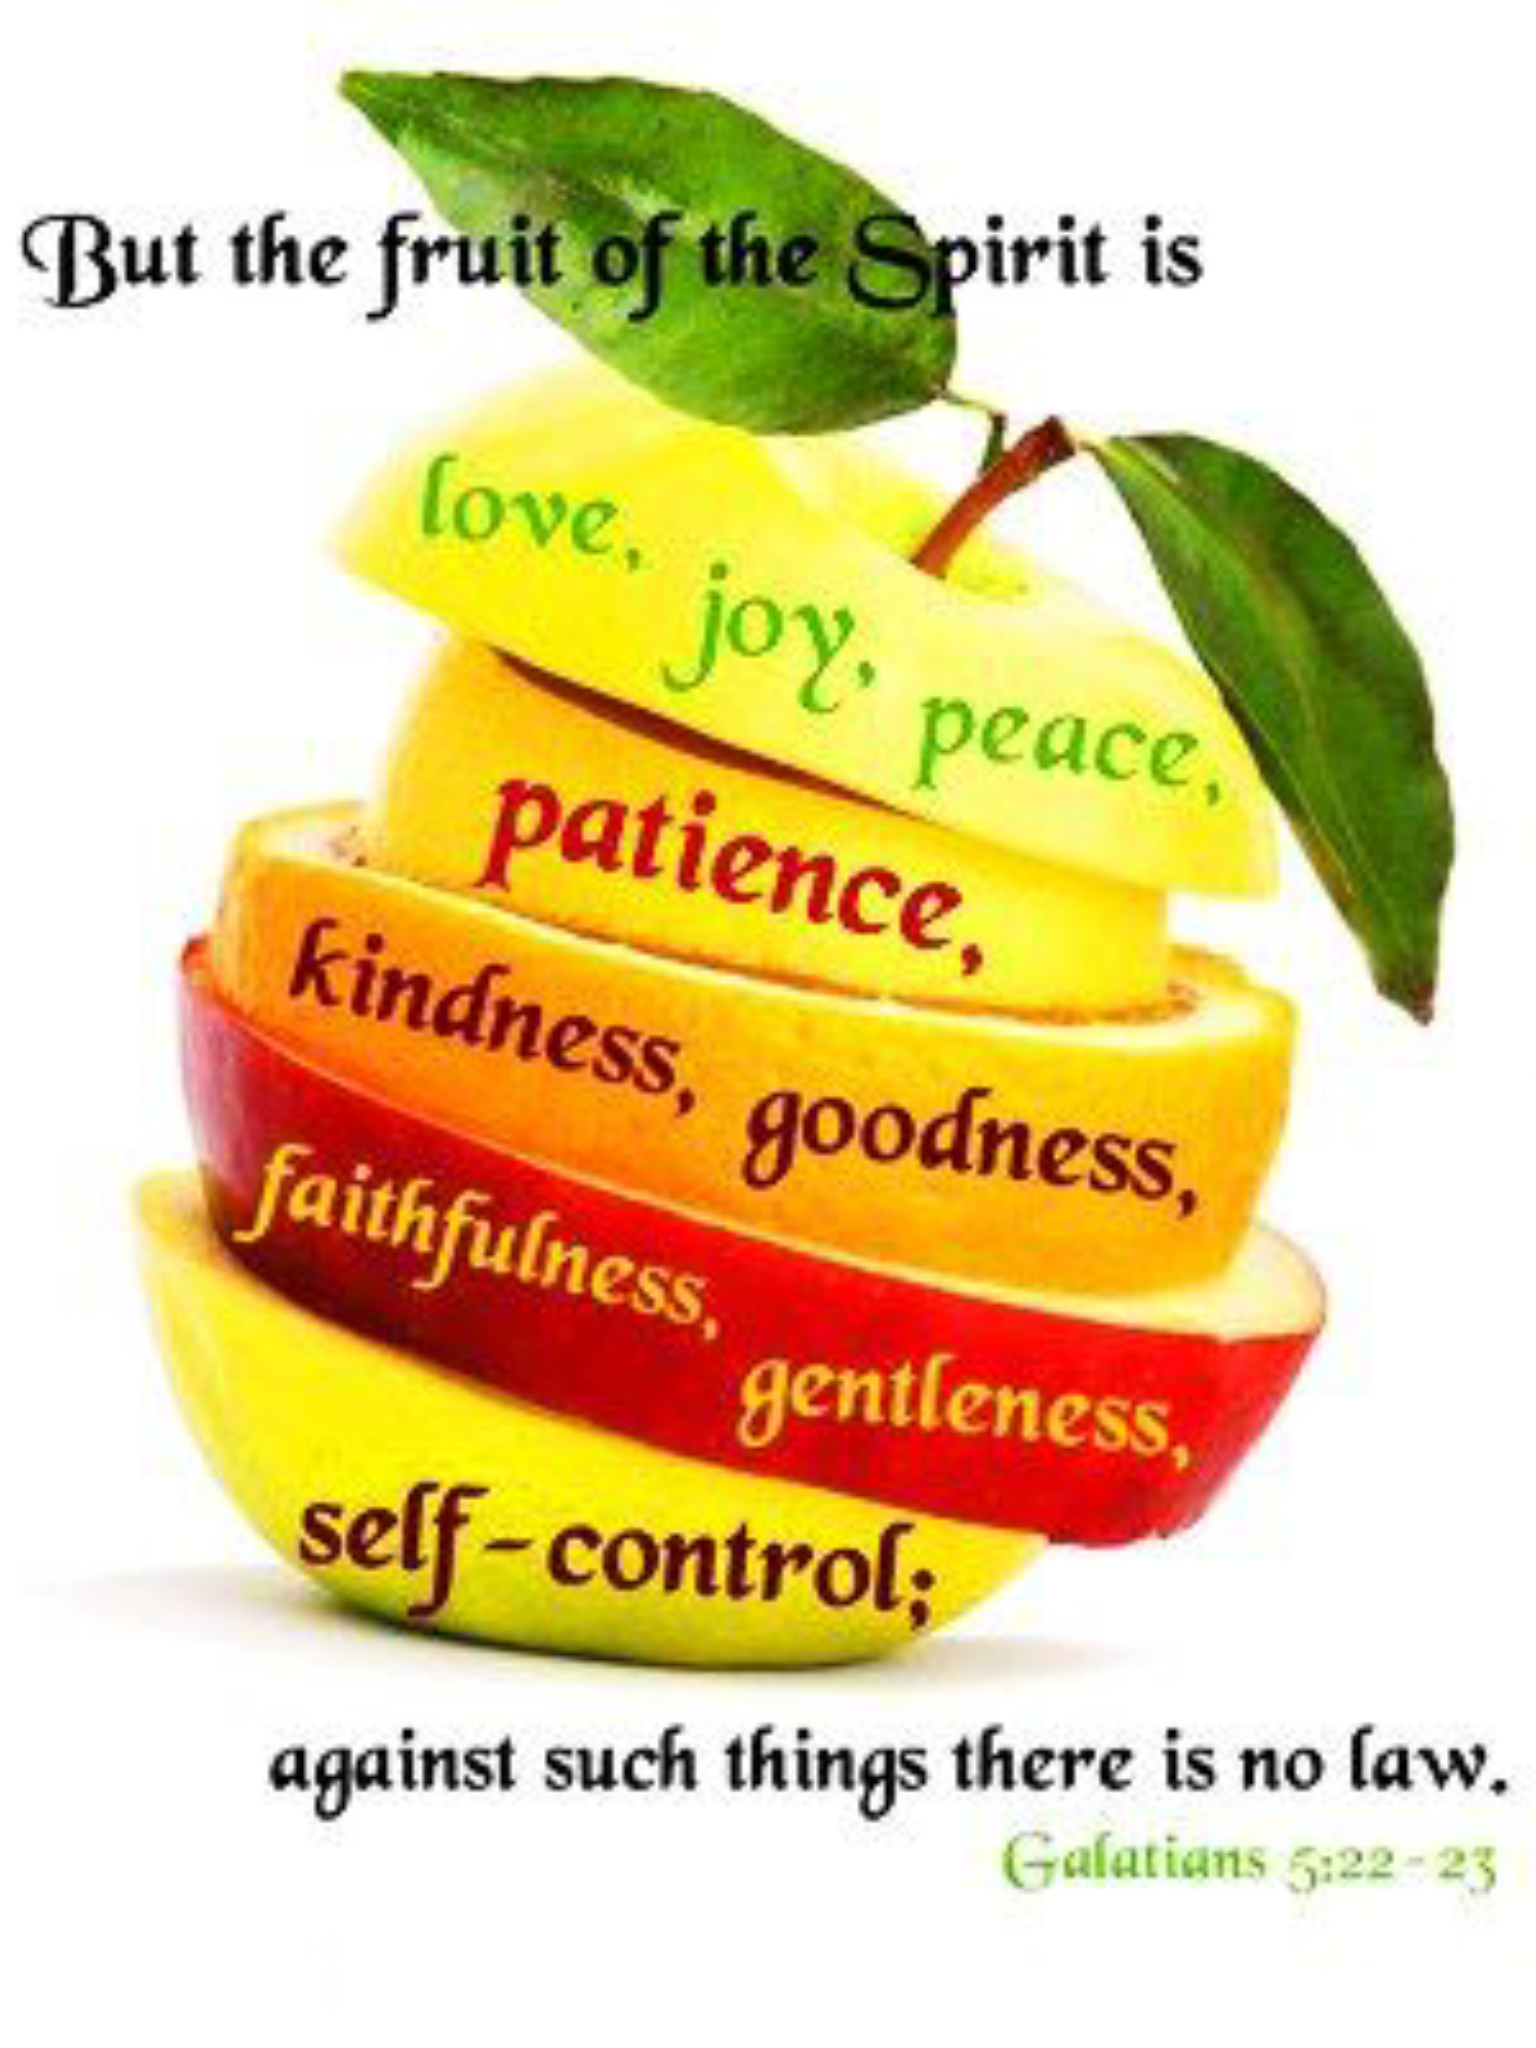 Galatians 5 22 23 Kjv Bearing Fruits Worthy Of Repentance Implies A Process Just As A Tree Does Not Produce Fruit Fruit Of The Spirit Fruit Love Joy Peace